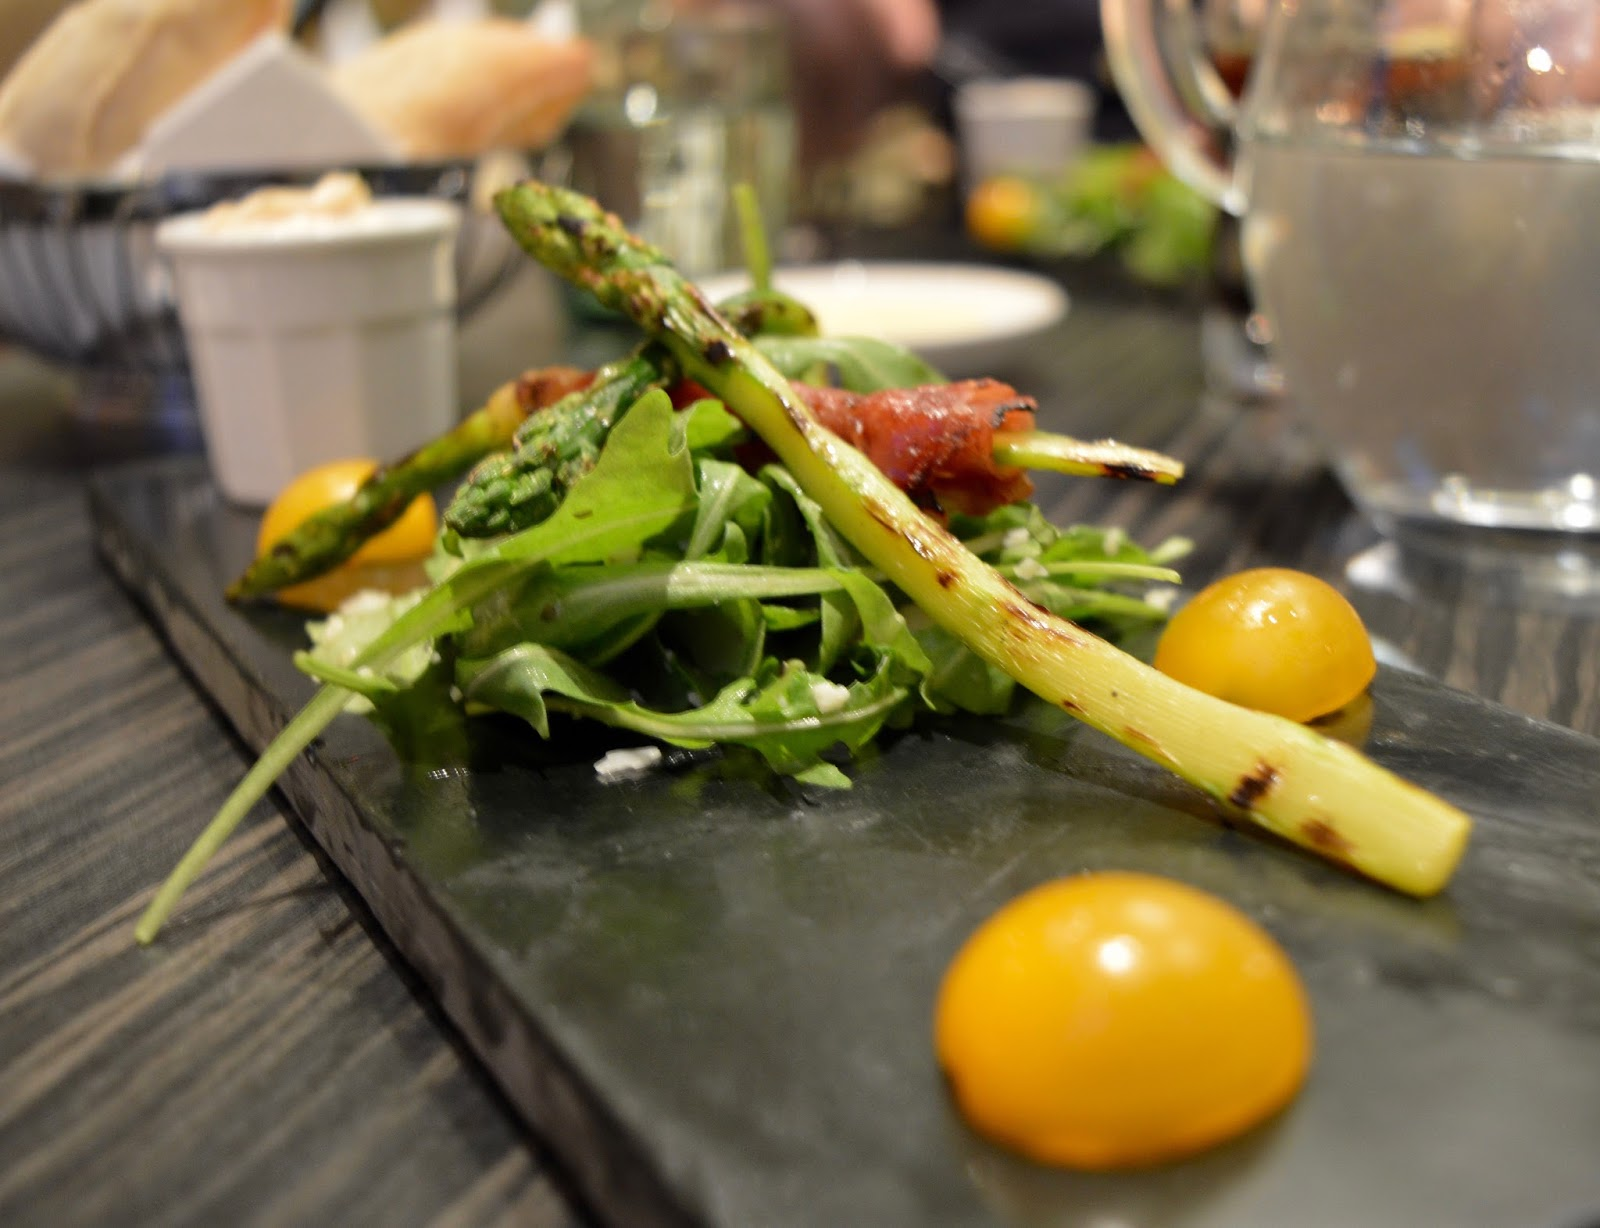 The Brasserie at the Grand Hotel, Tynemouth | New Tasting Menu review  - Asparagus